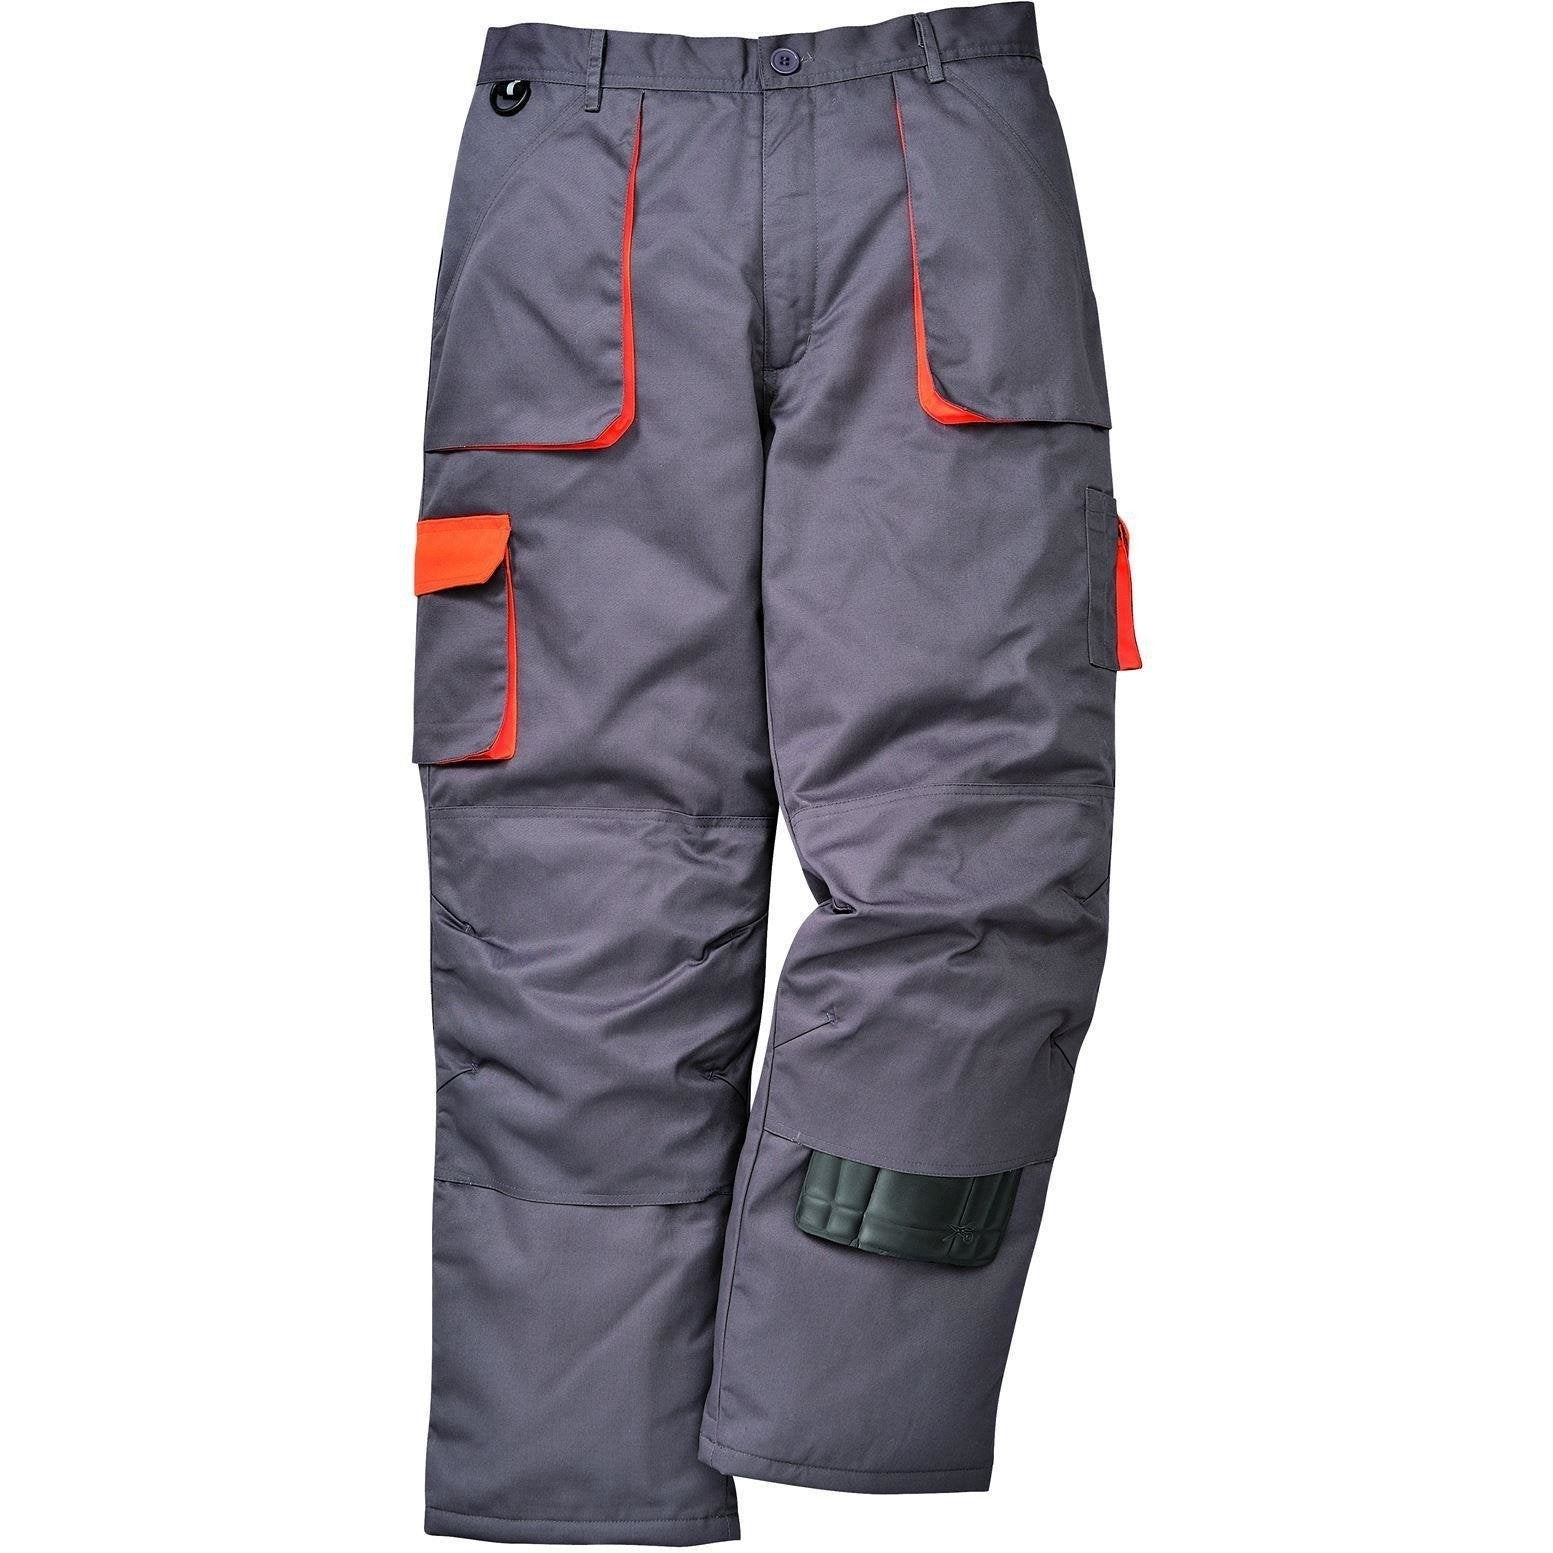 Portwest Portwest Texo Contrast Trouser - Lined TX16 - reid outdoors